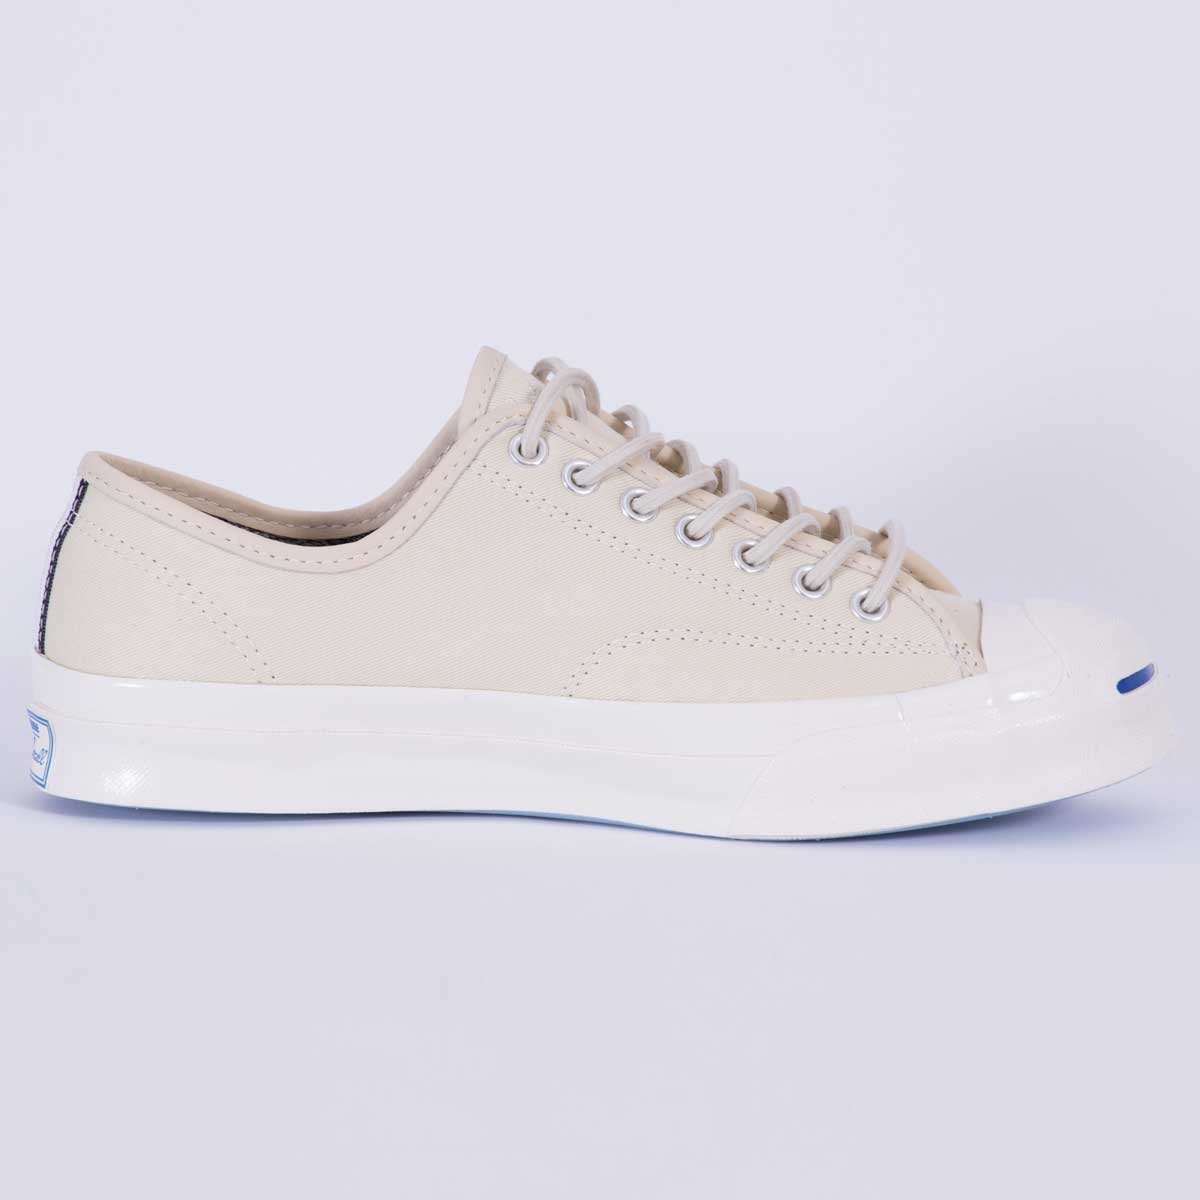 Converse Jack Purcell Signature Twill Shield Canvas